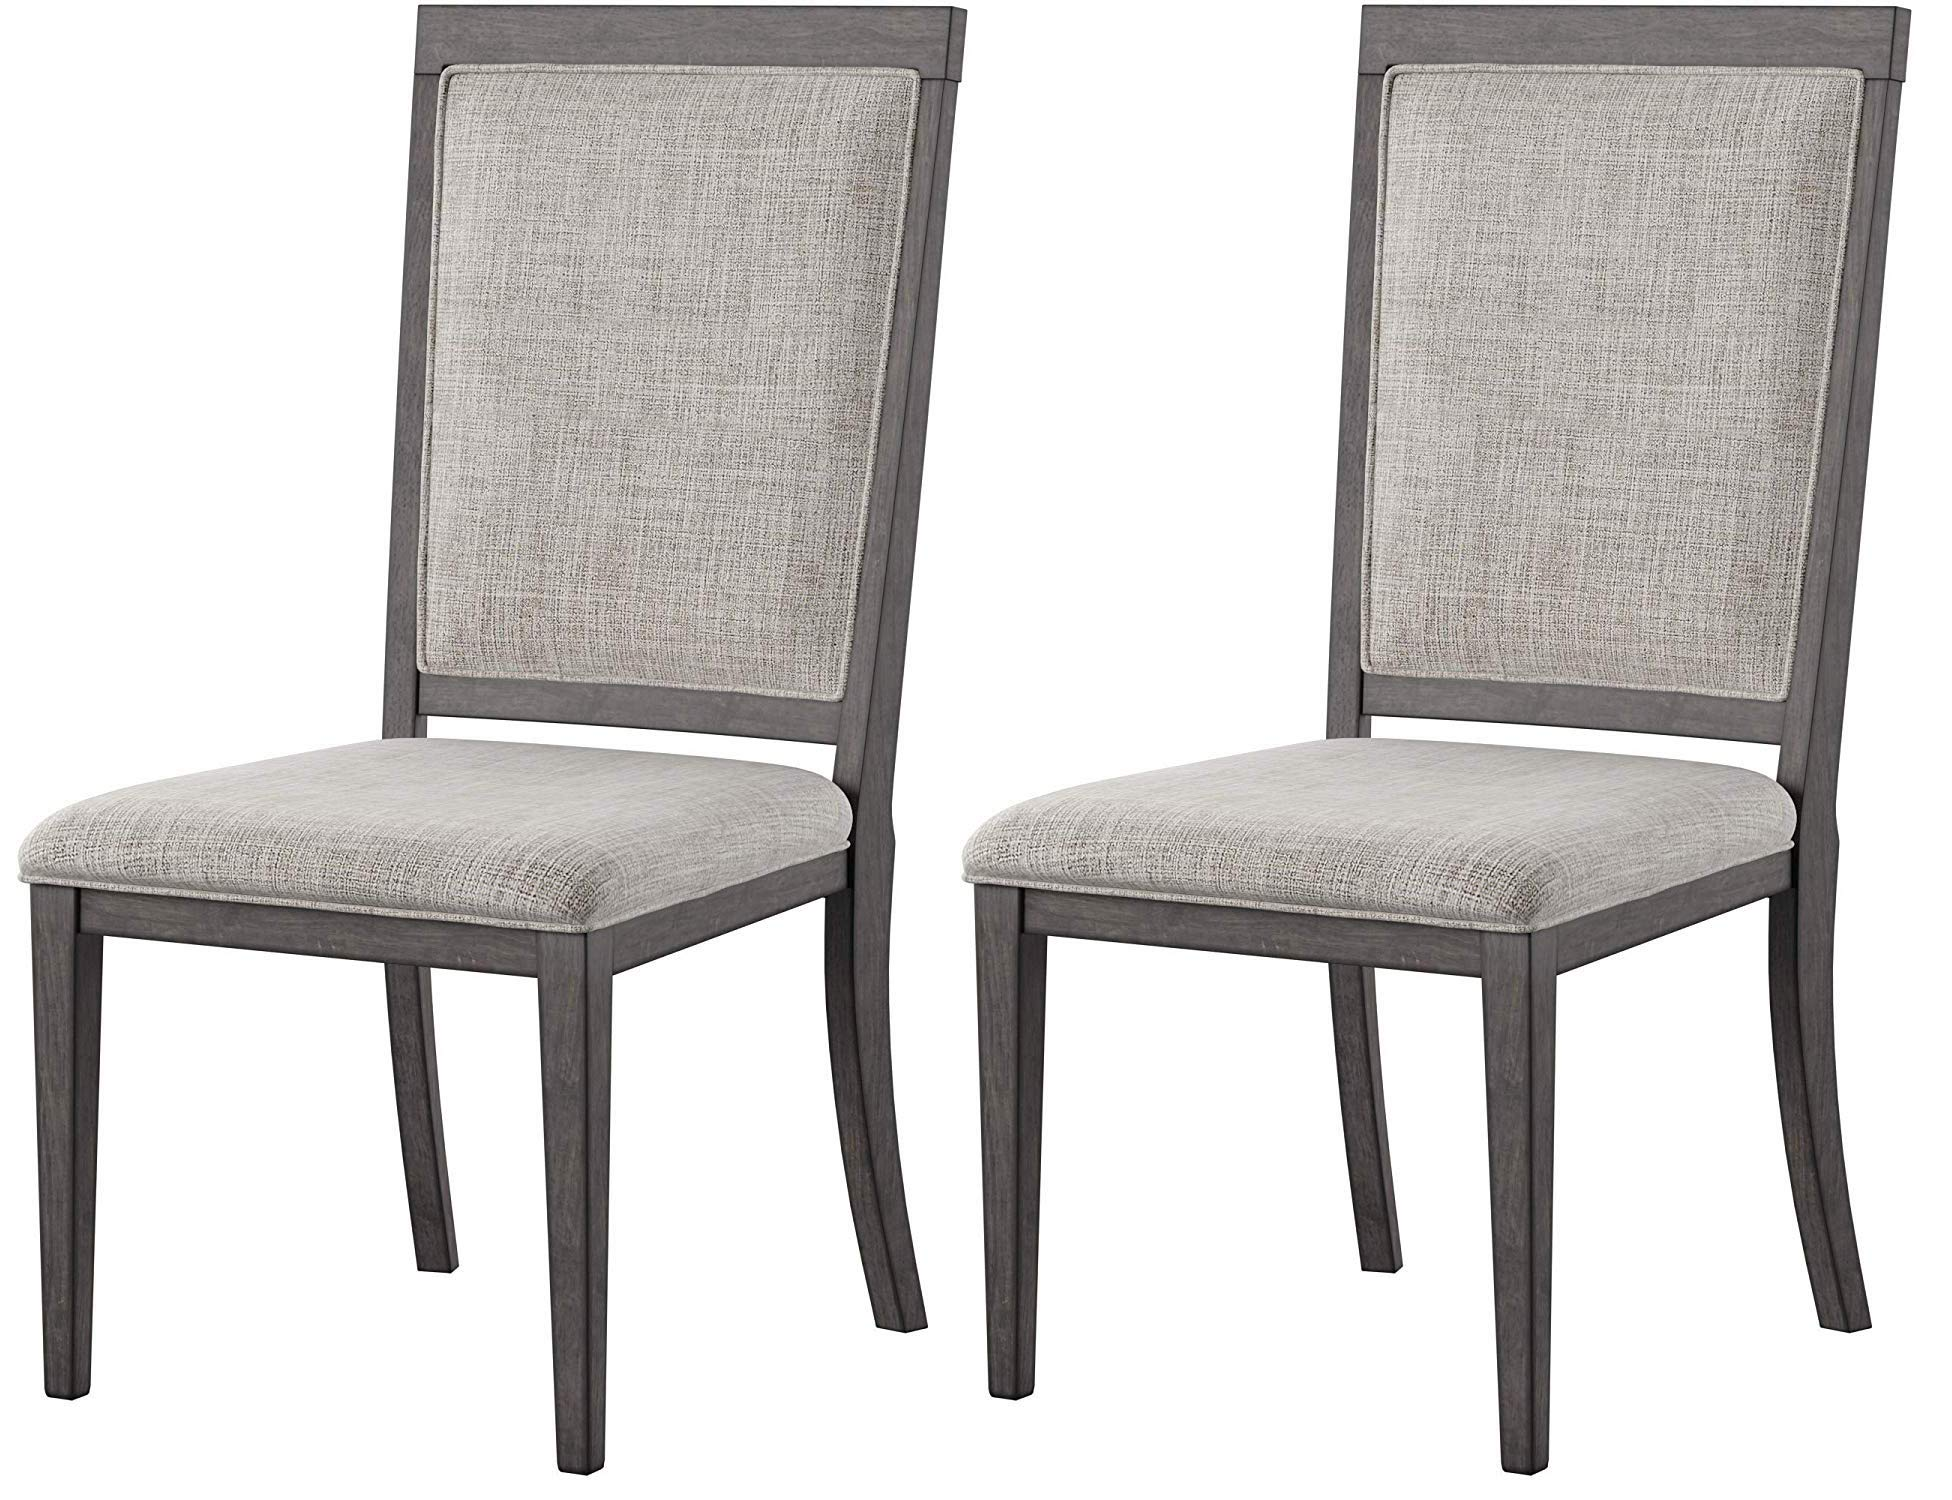 Ashley Furniture Signature Design - Chadoni Dining Side Chair - Set of 2 - Upholstered - Metal Accents - Smoky Gray Finish